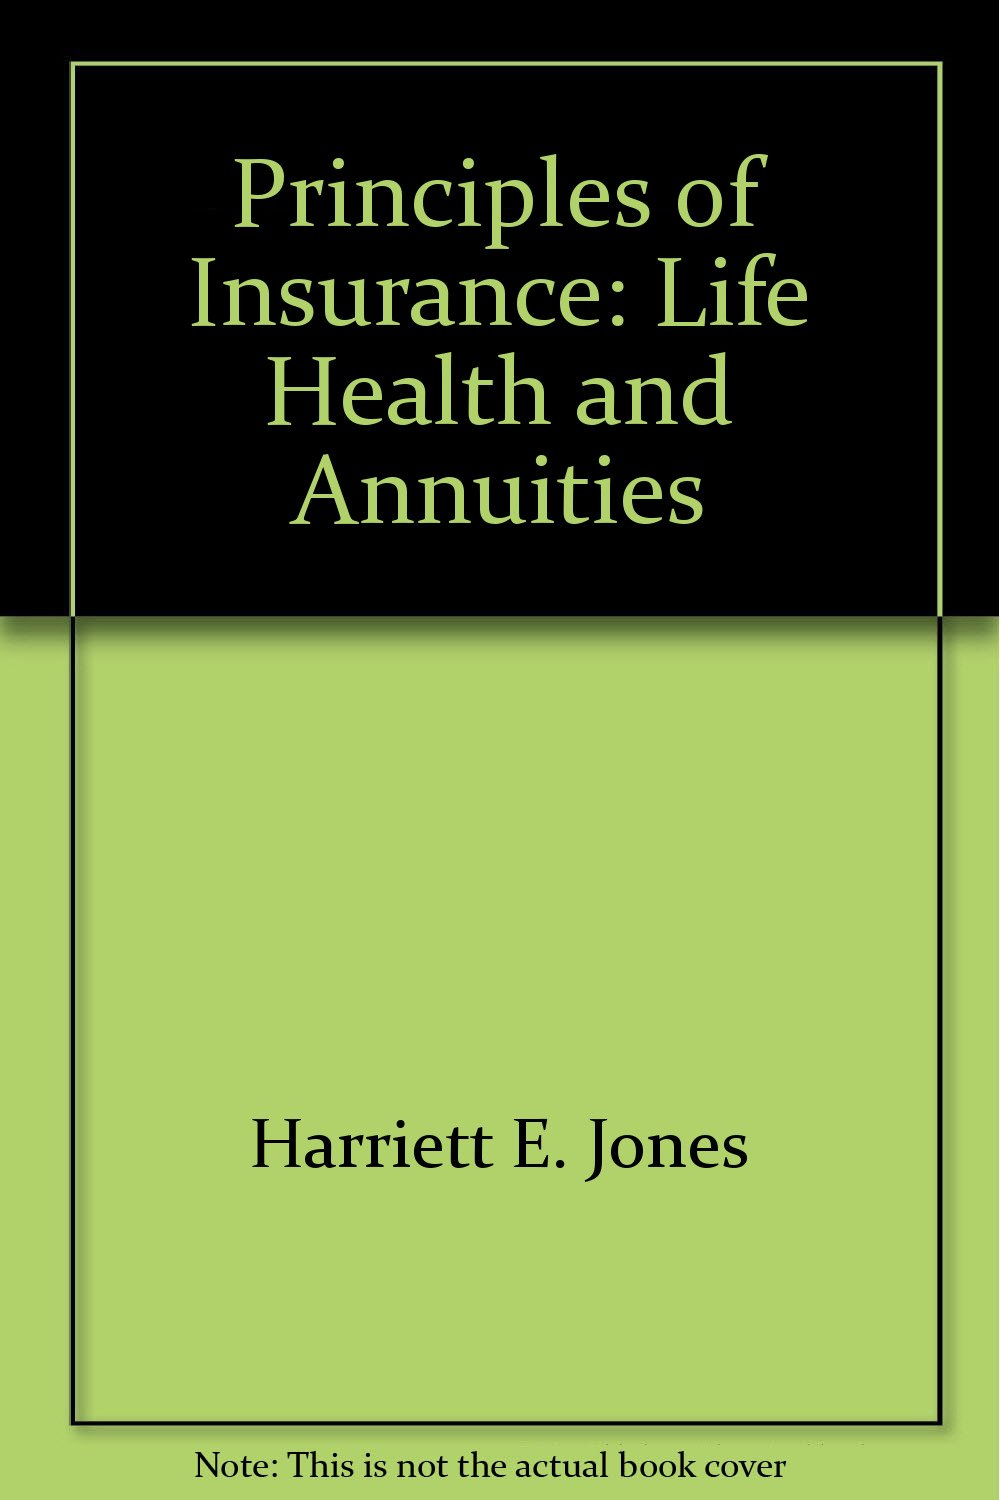 Principles of insurance life health and annuities harriett e principles of insurance life health and annuities harriett e jones 9780939921744 amazon books xflitez Image collections